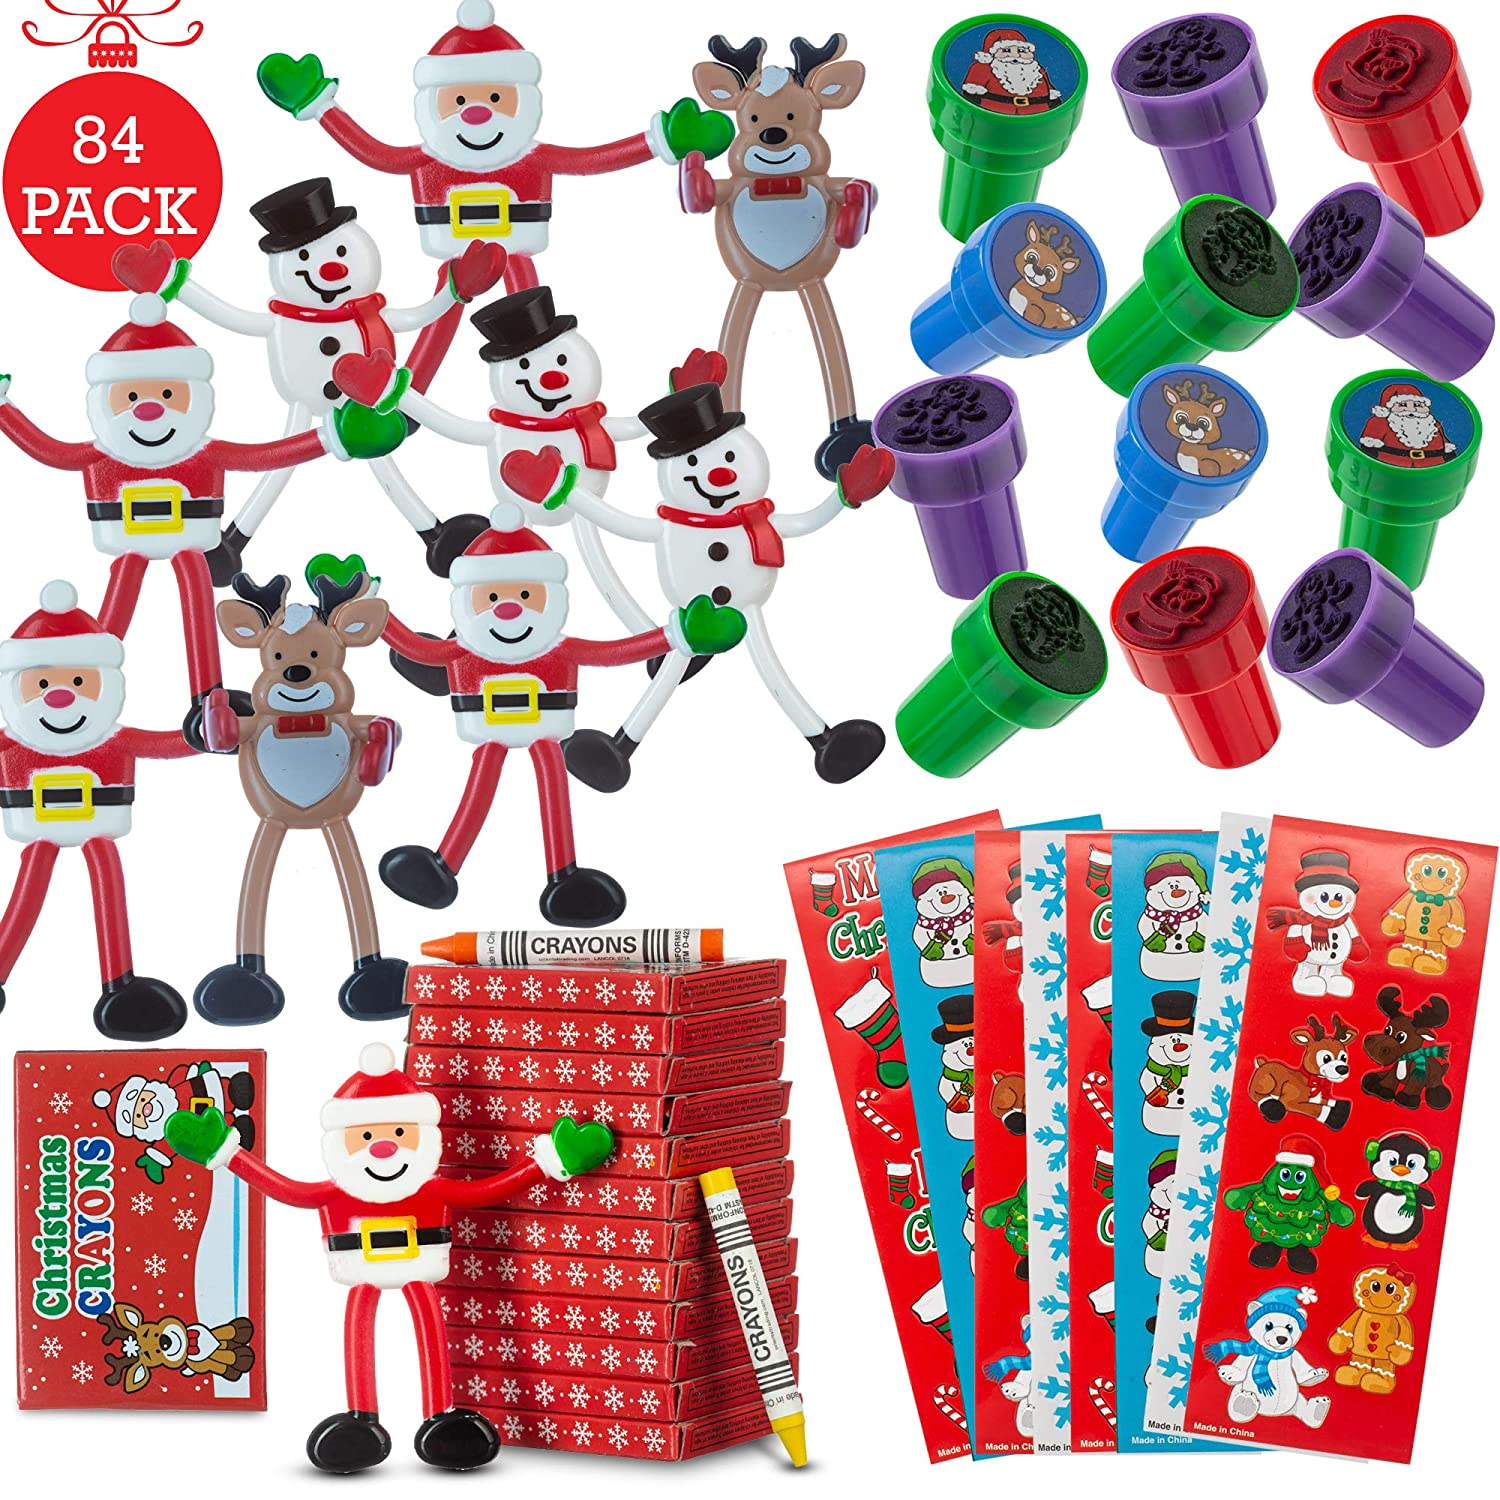 FAVONIR Christmas Party Favor Stuffers 84 Pcs Goody Bag Assortment Bendable Characters Self Ink Stampers Crayons Colorful Holiday Theme Sticker Assortment Kids Activity Toys And Fun Reward Prizes